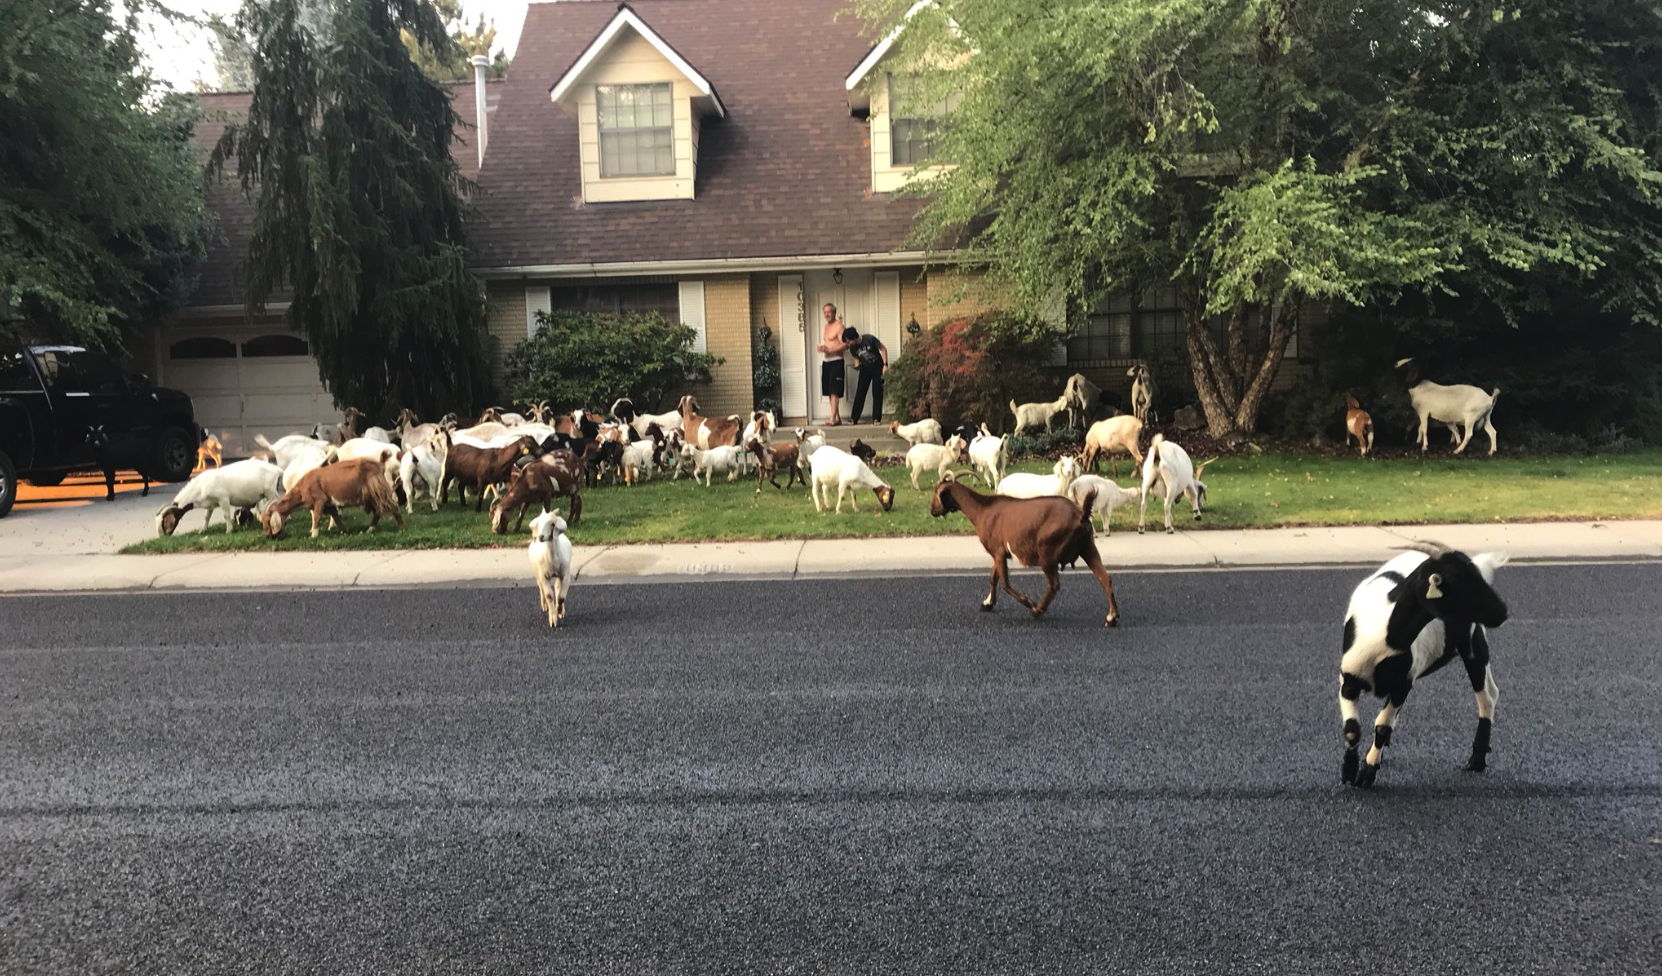 Let These Rebel Goats on the Loose Cleanse Your Social Media-Addled Brain